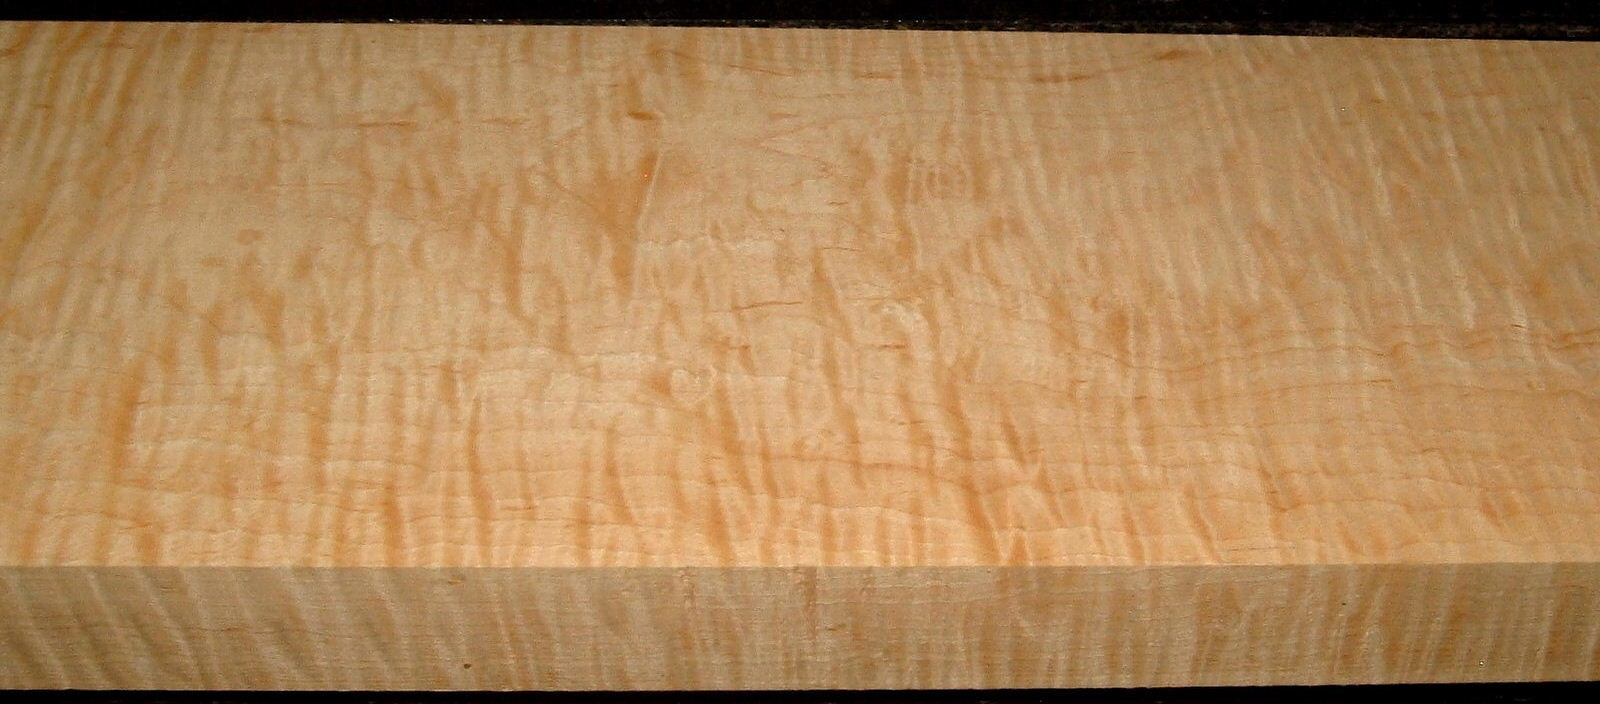 HM2001-14, 1-15/16x7-1/2x43, Curly Tiger Hard Maple